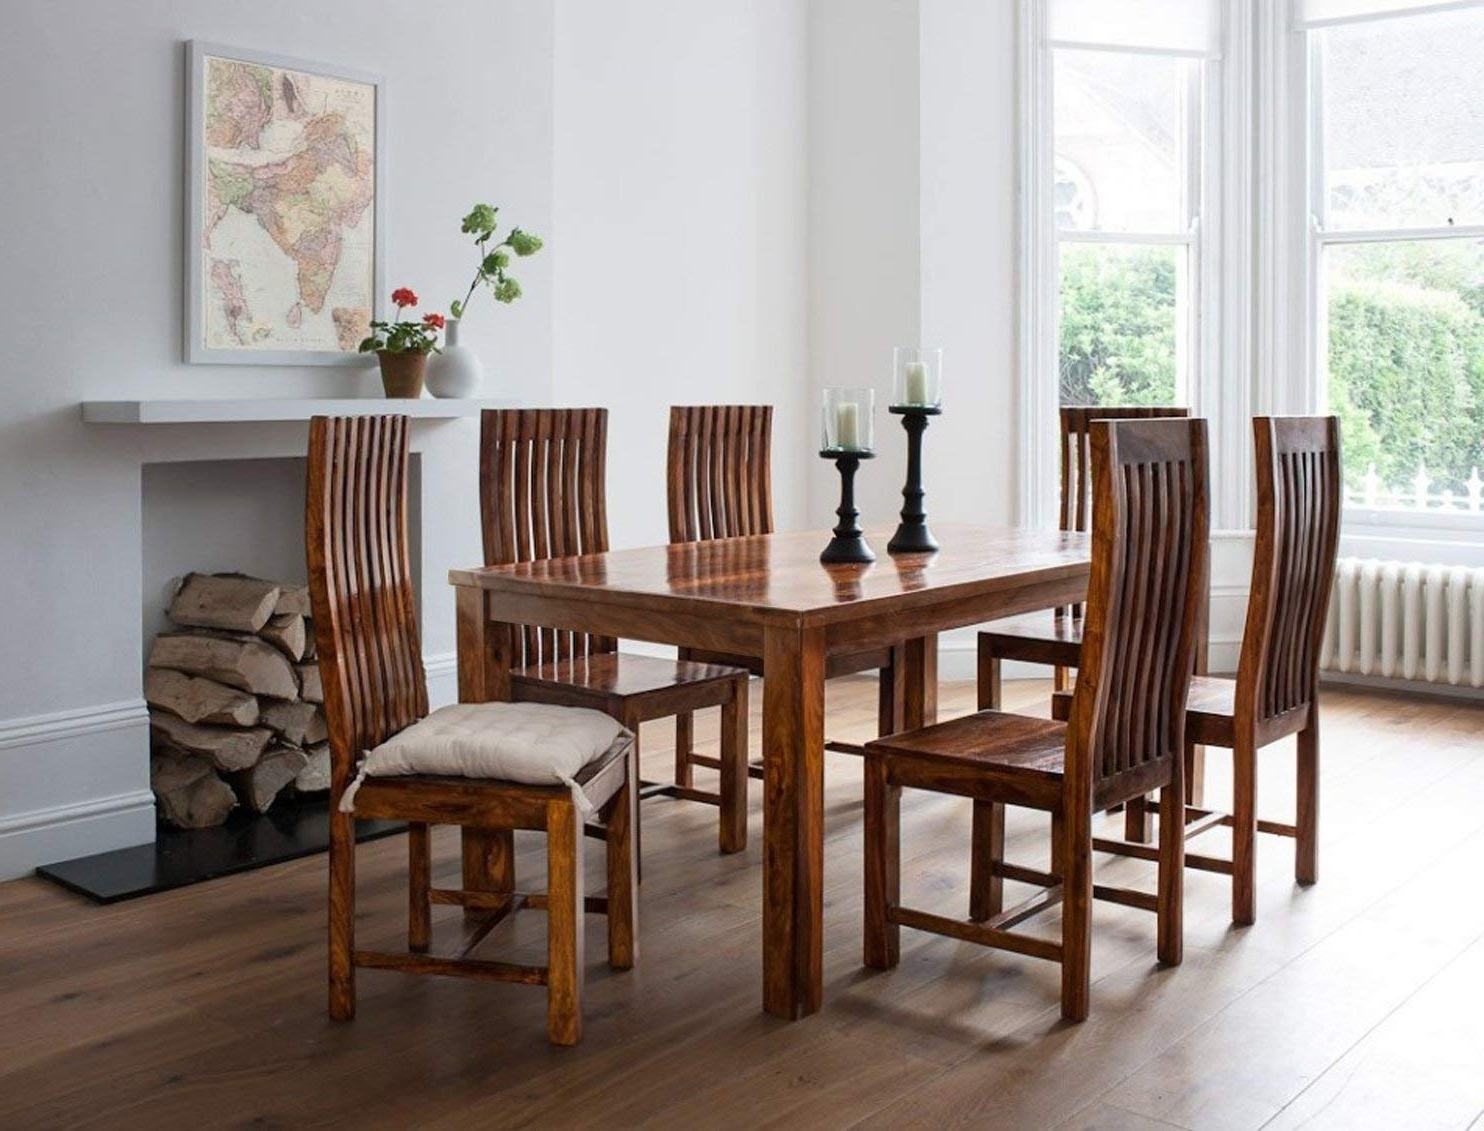 6 Chair Dining Table Sets With Regard To Trendy Lifeestyle Handcrafted Sheesham Wood 6 Seater Dining Set (Honey (View 5 of 25)